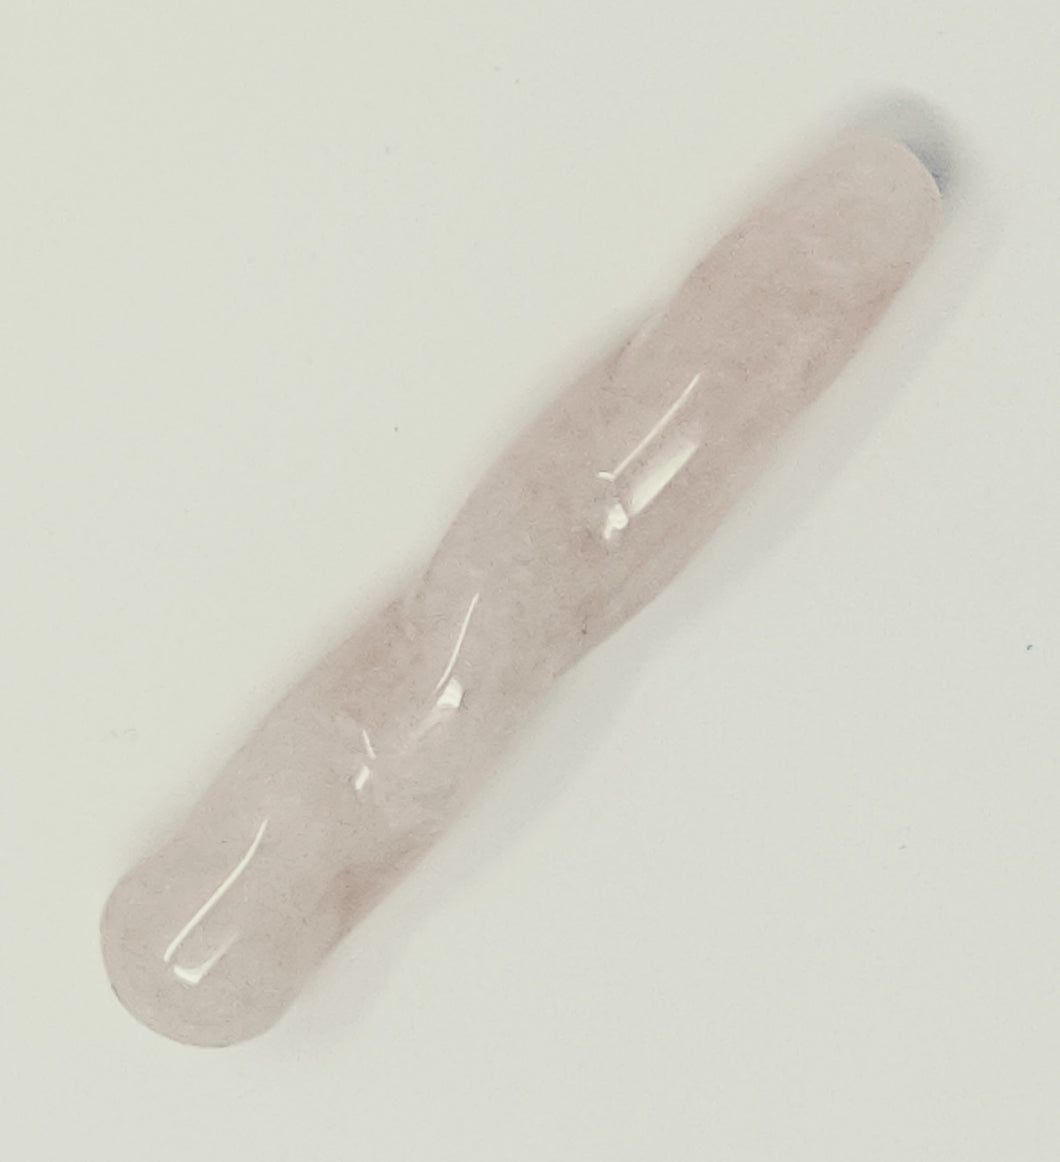 Small Rose Quartz Unicorn wand Massager